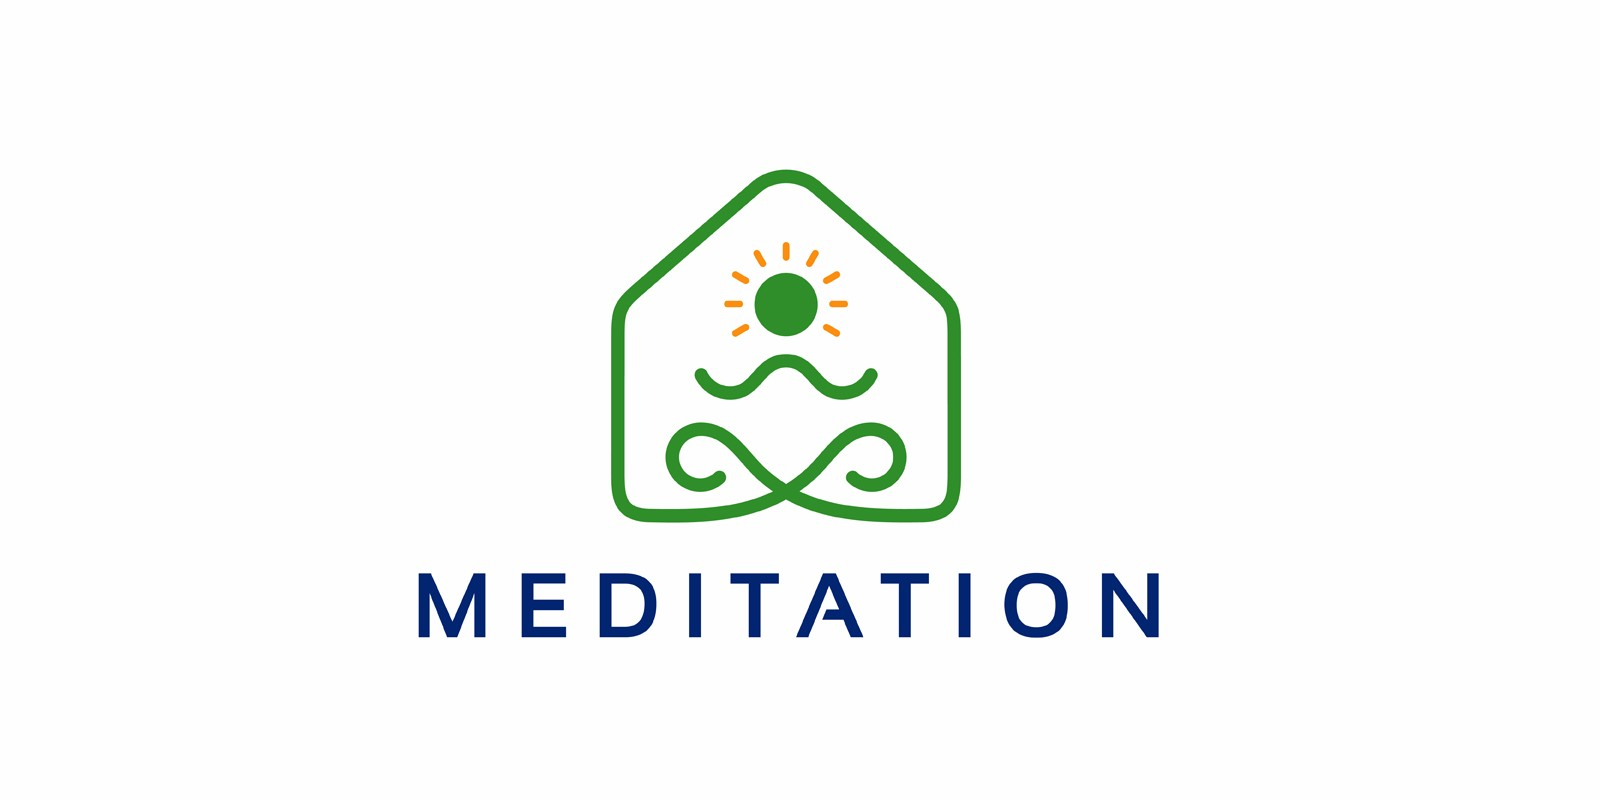 meditation logo by smg codester meditation logo by smg codester